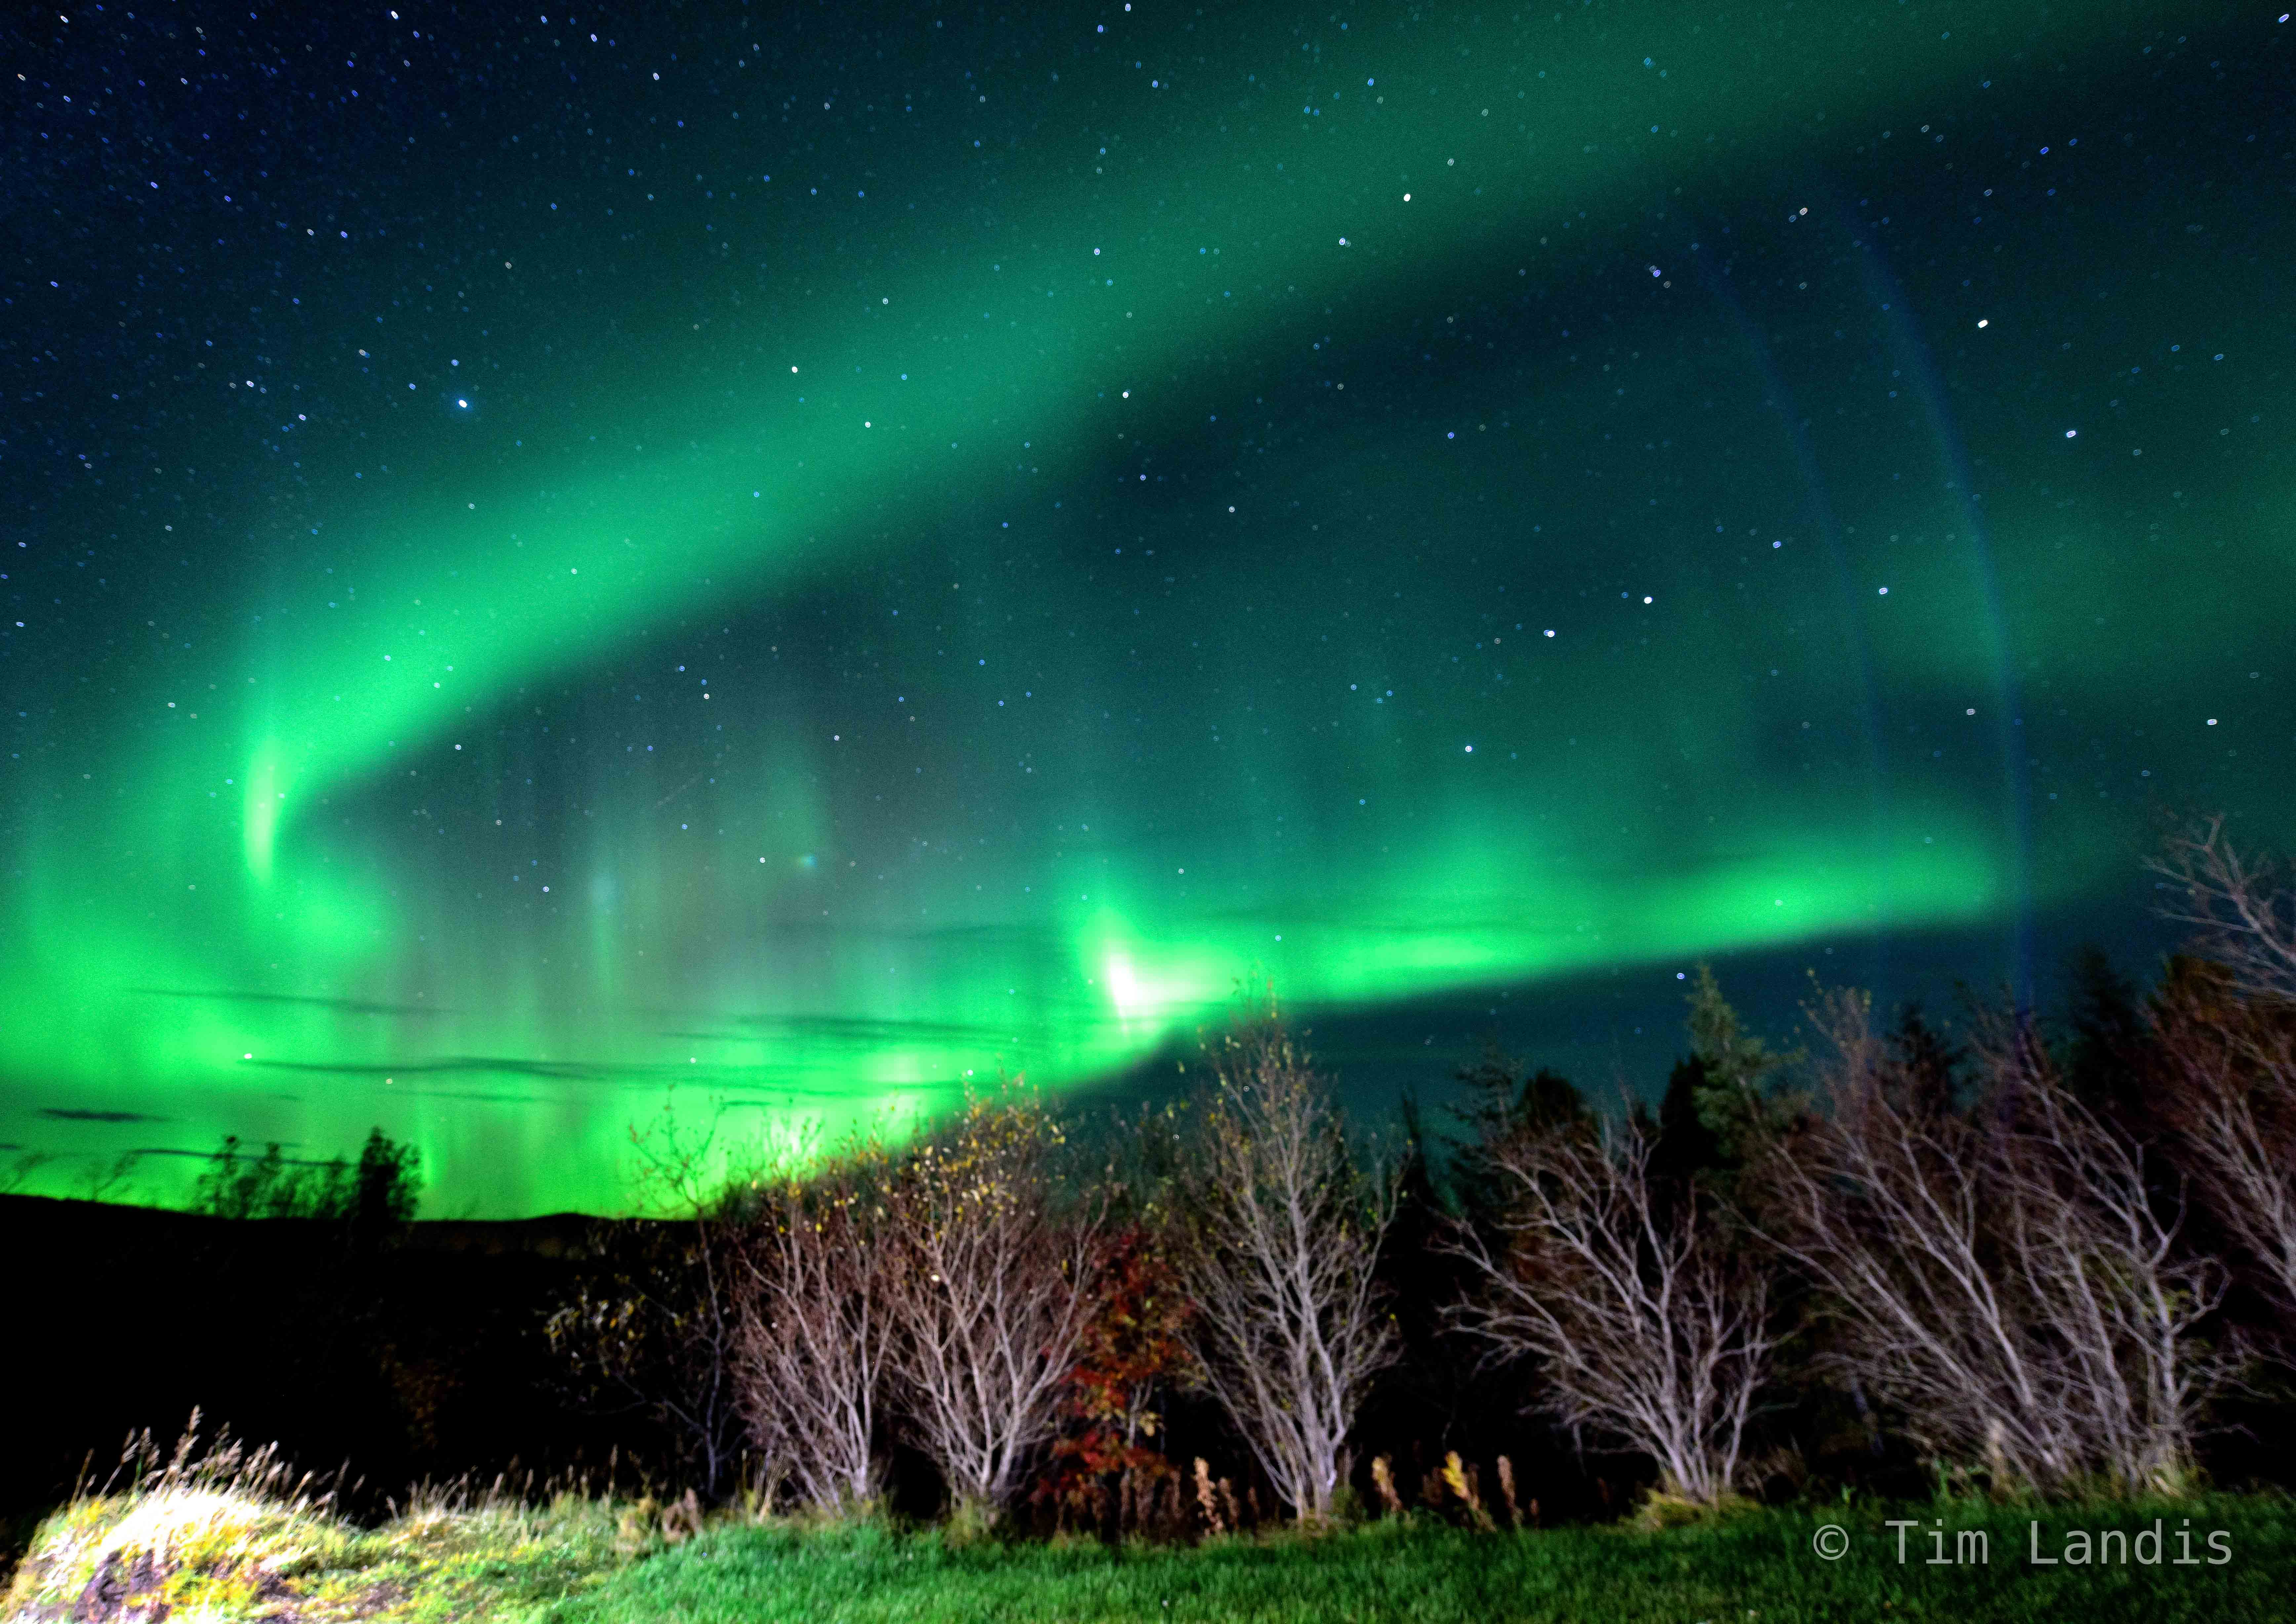 aurora borealis, dancing lights, green glow, green lights, photo